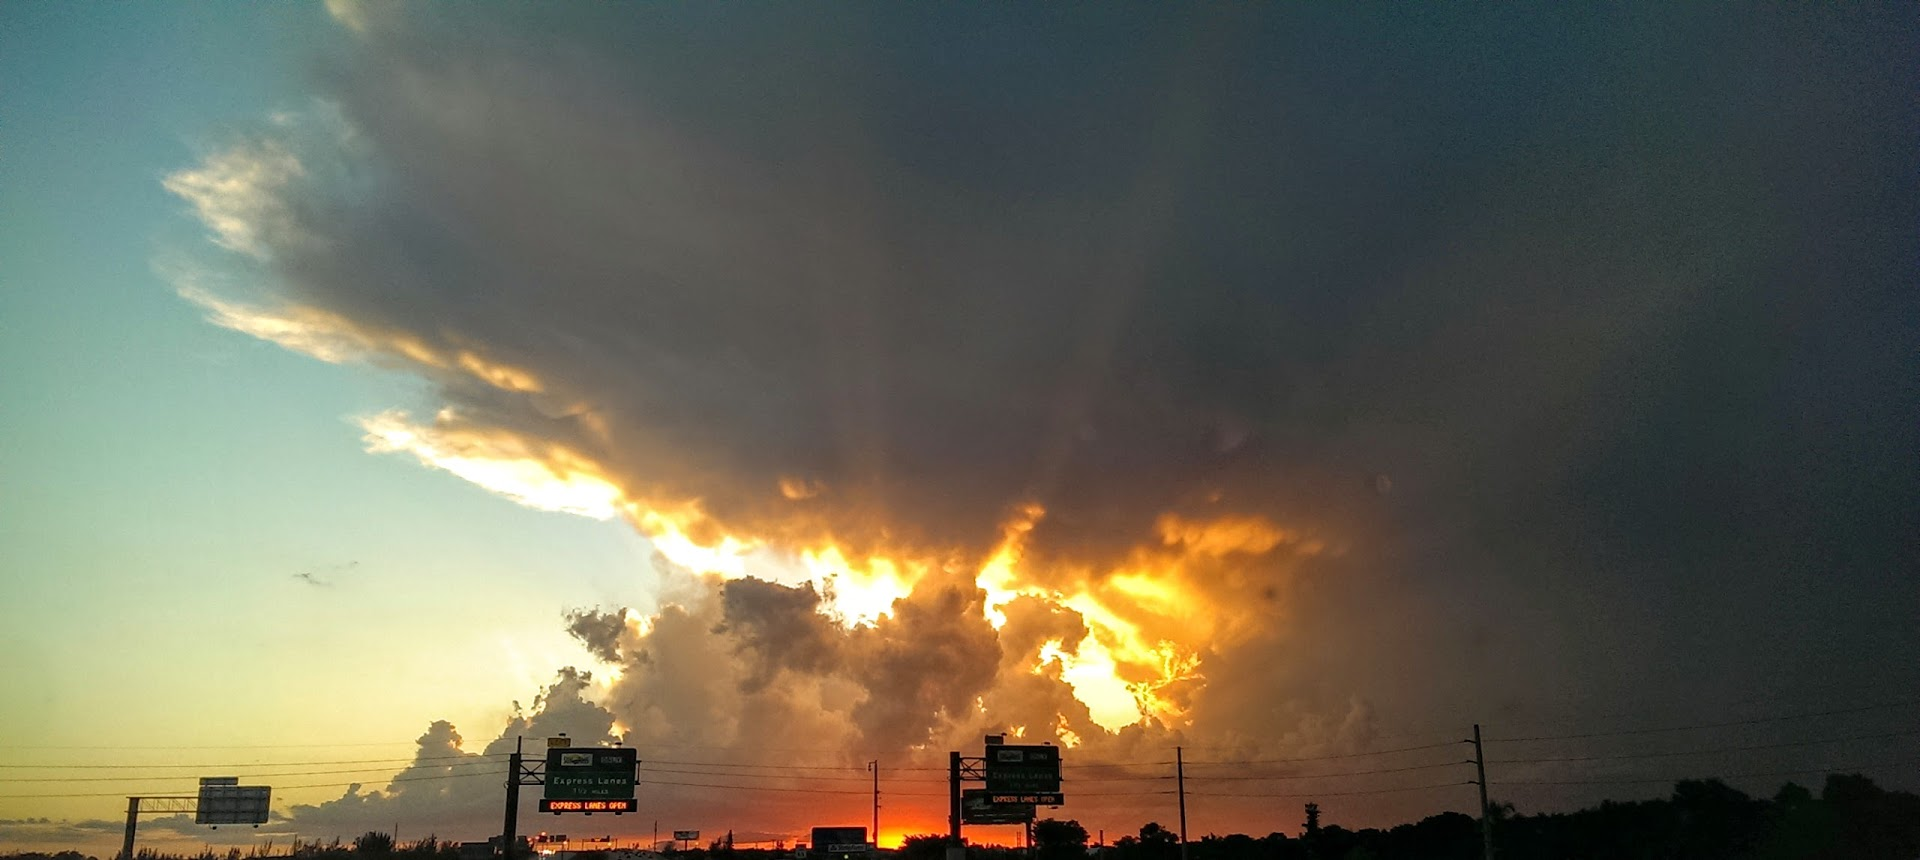 Sunsets and storms. 2 of my favorite things, and South Florida has plenty of both.